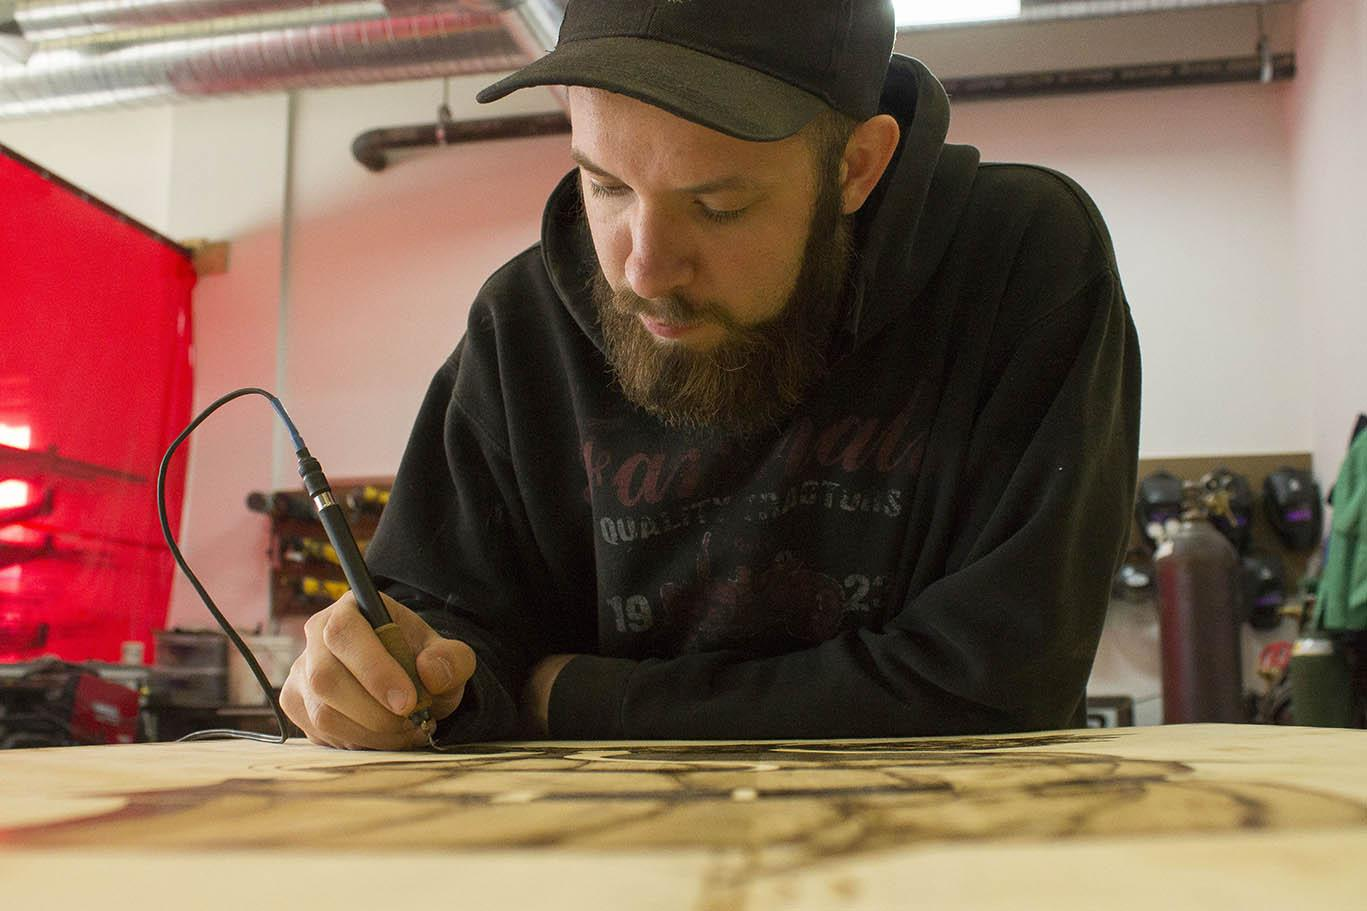 Photo by Sandro Perrino Graphic design major Zach Baker burns his pirate ship into a plank of wood, a hobby of his.